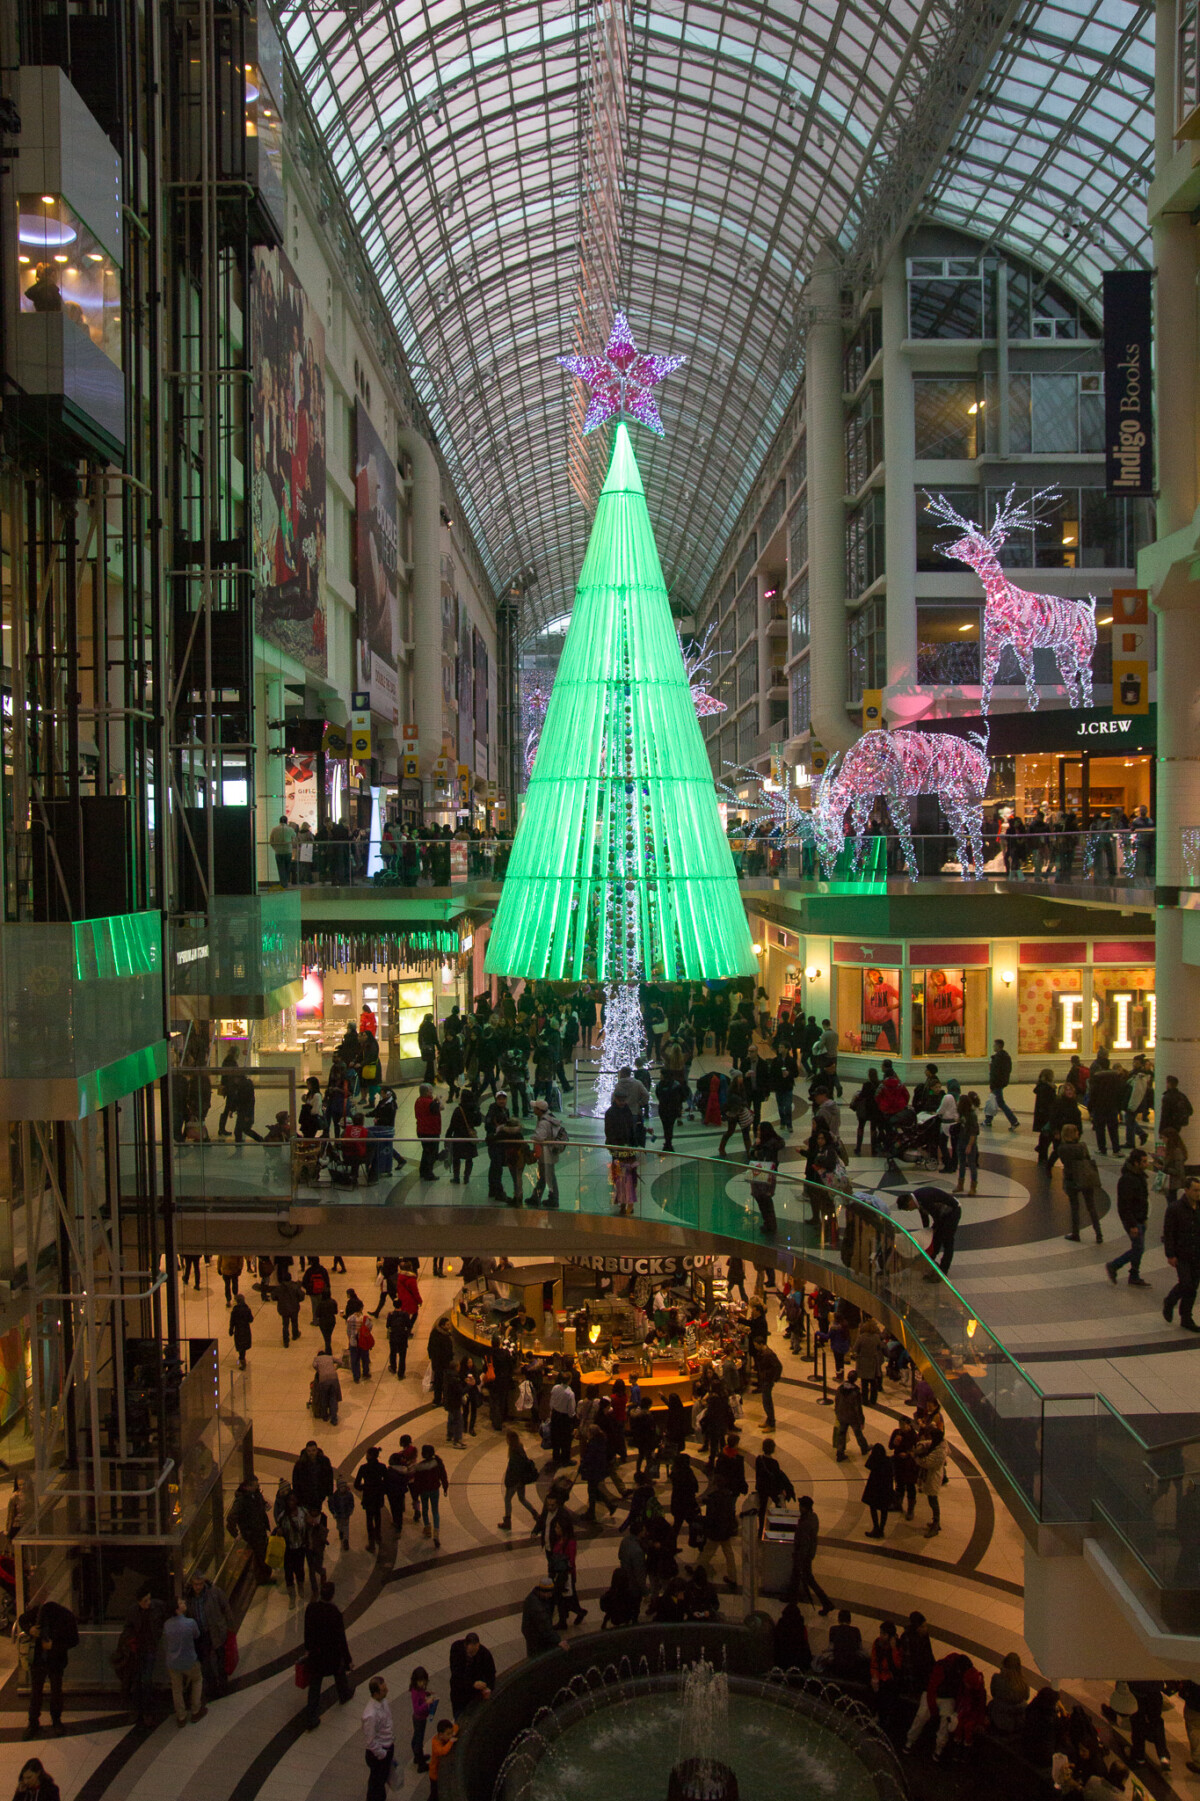 Merry Christmas at The Eaton Center